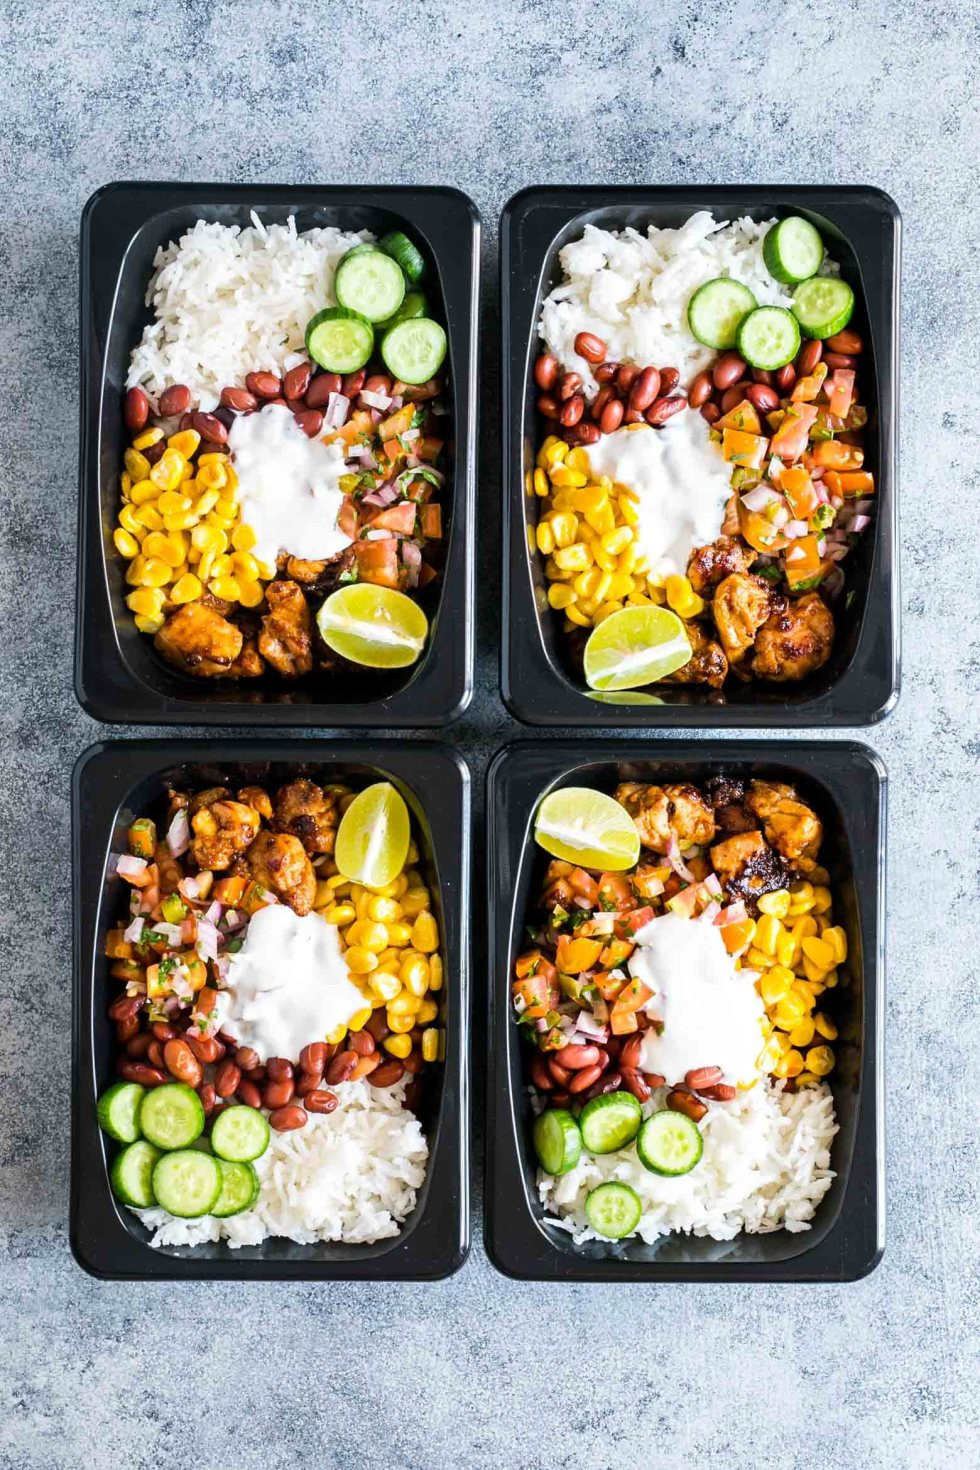 Easy Healthy Lunches To Go  Easy Chicken Burrito Meal Prep Bowls Gluten Free My